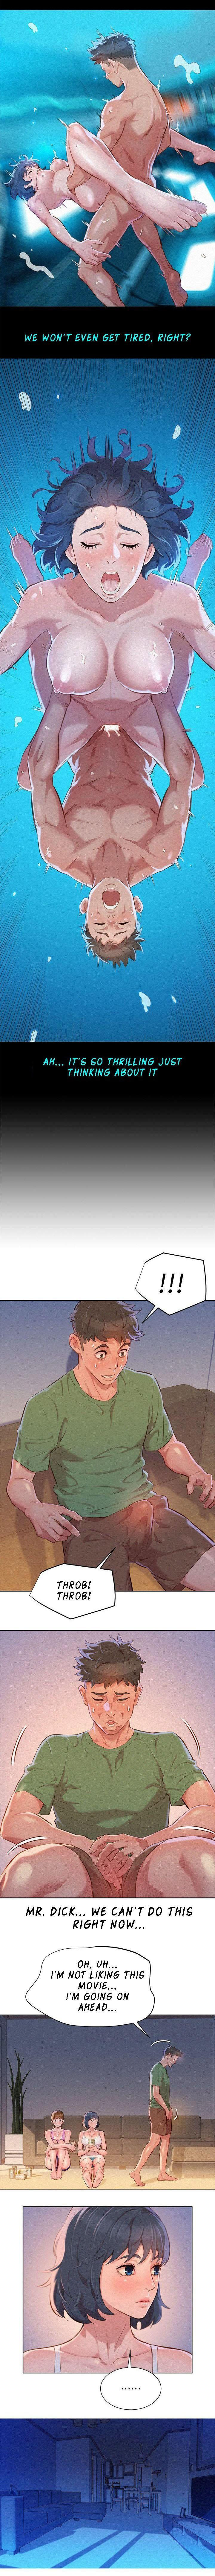 What do you Take me For? Ch.50/? 375